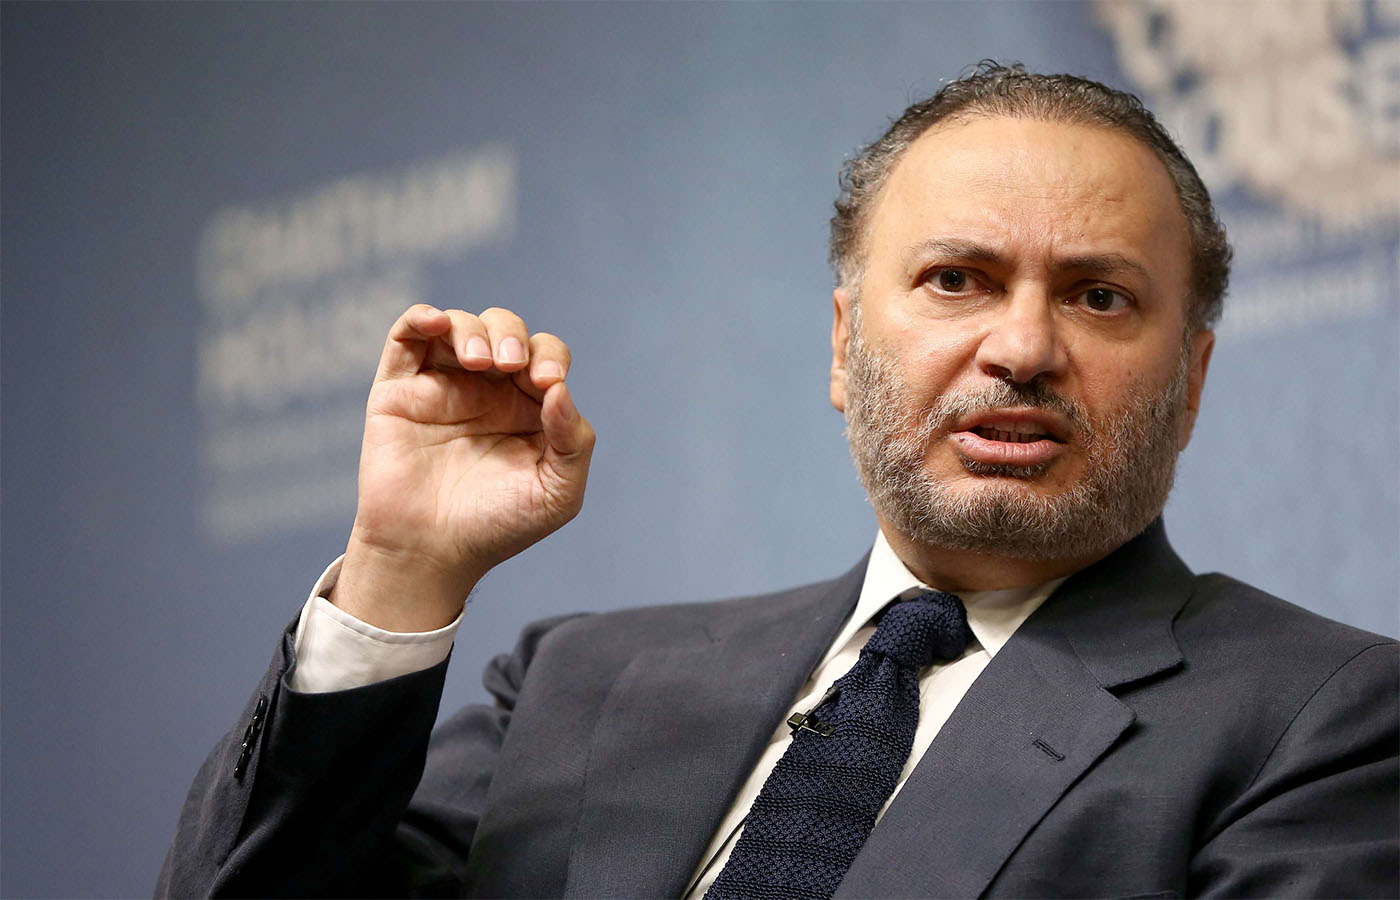 UAE Minister of State for Foreign Affairs Anwar Gargash